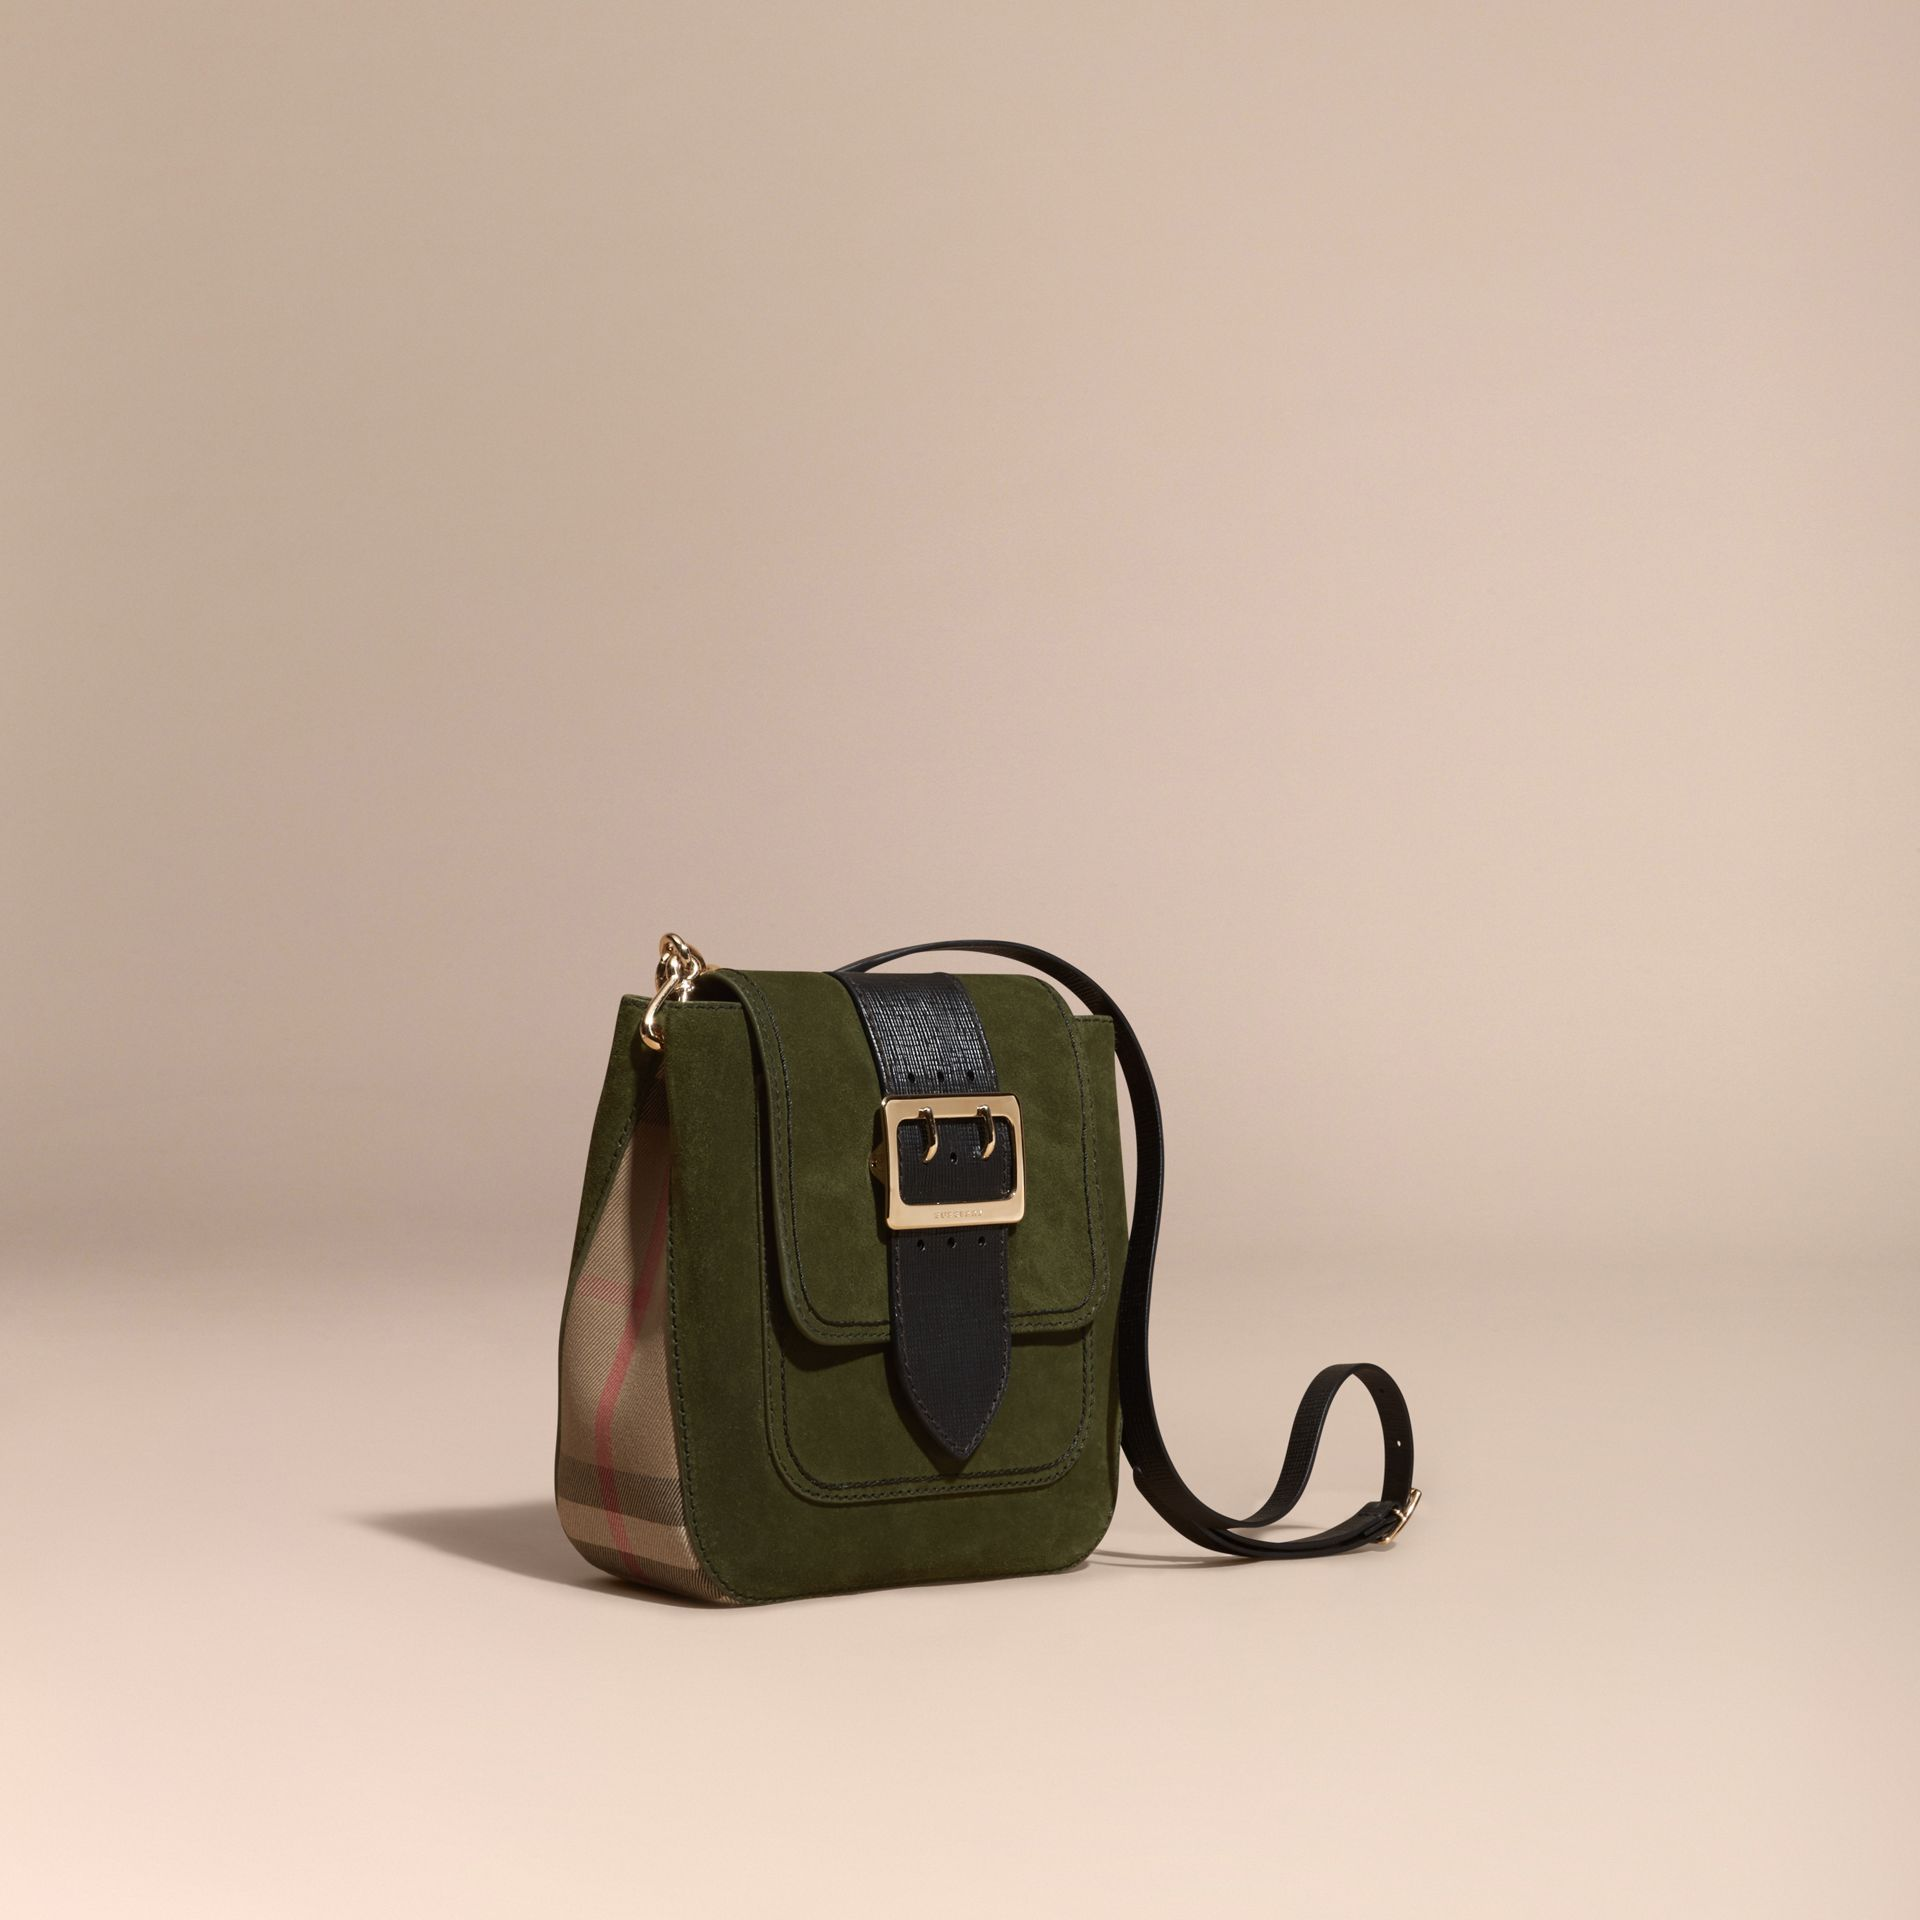 Verde militare Borsa The Buckle media quadrata in pelle scamosciata inglese e motivo House check - immagine della galleria 1